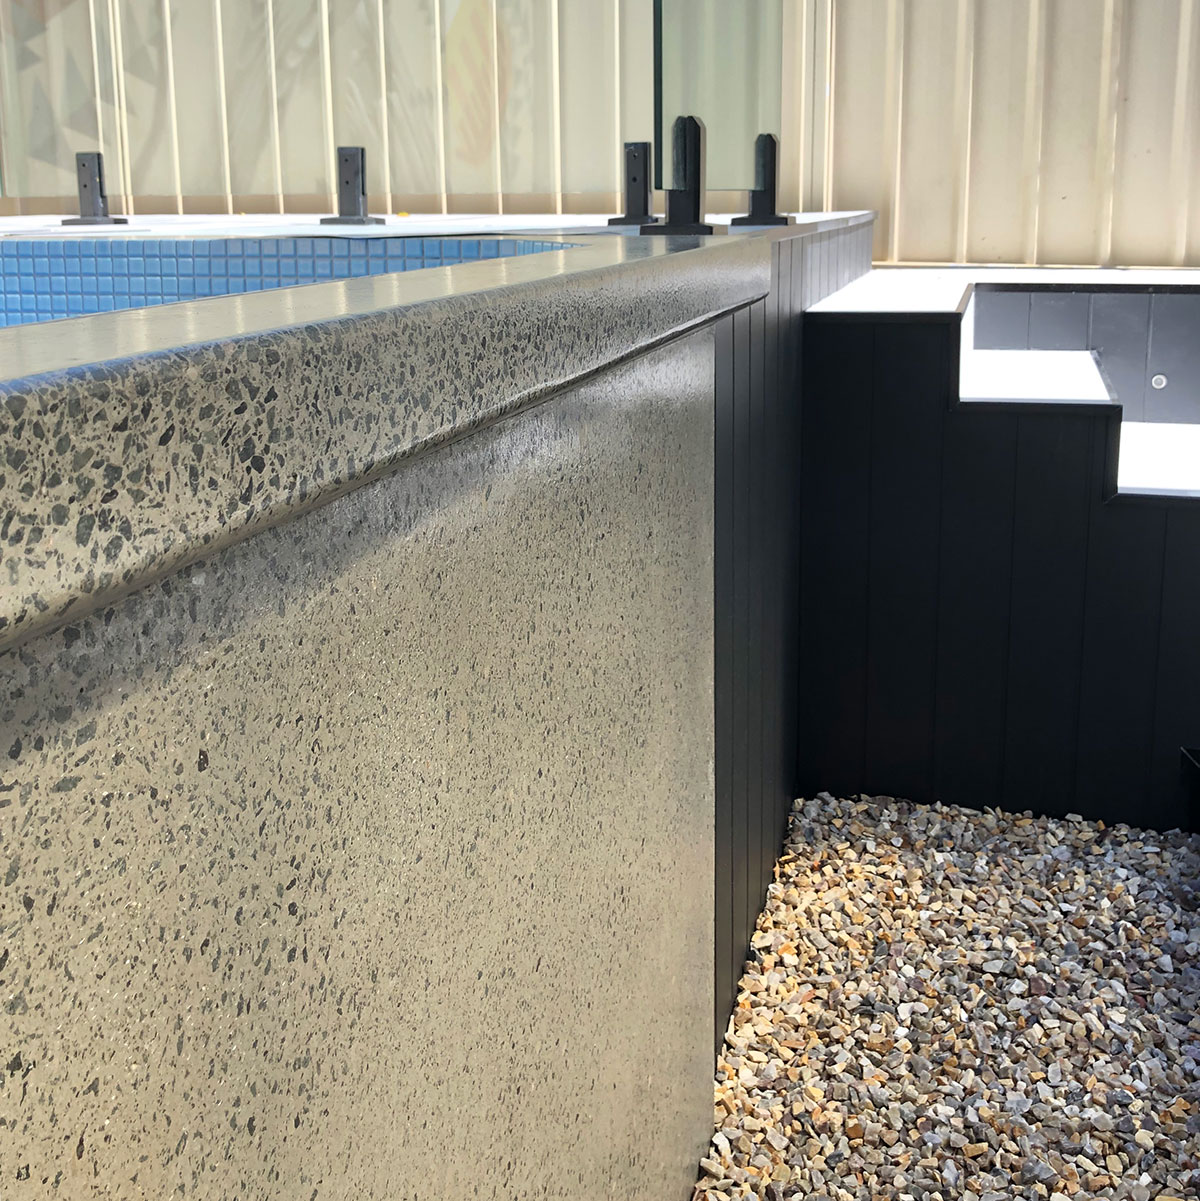 lunge pool above ground pool stairs